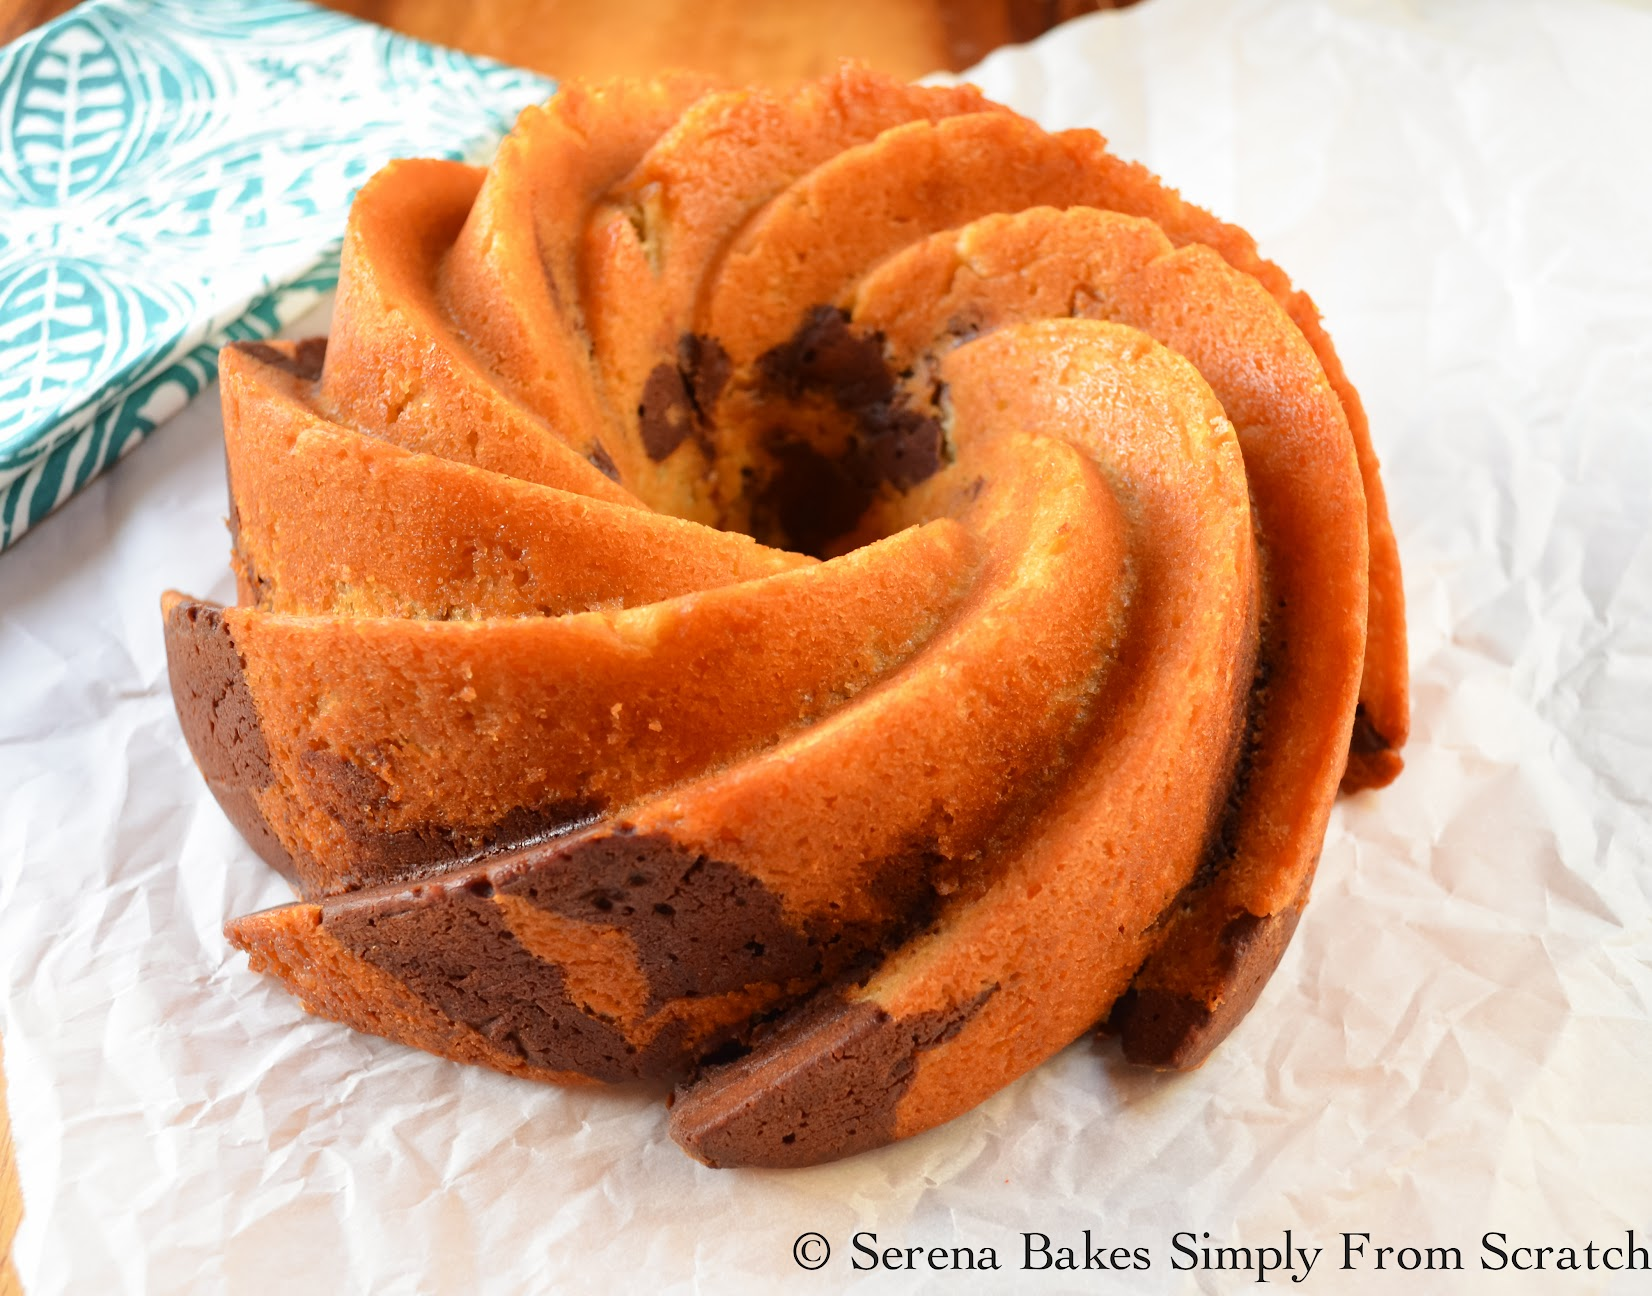 Buttermilk Marble Bundt Cake With Chocolate Glaze is perfect for company.